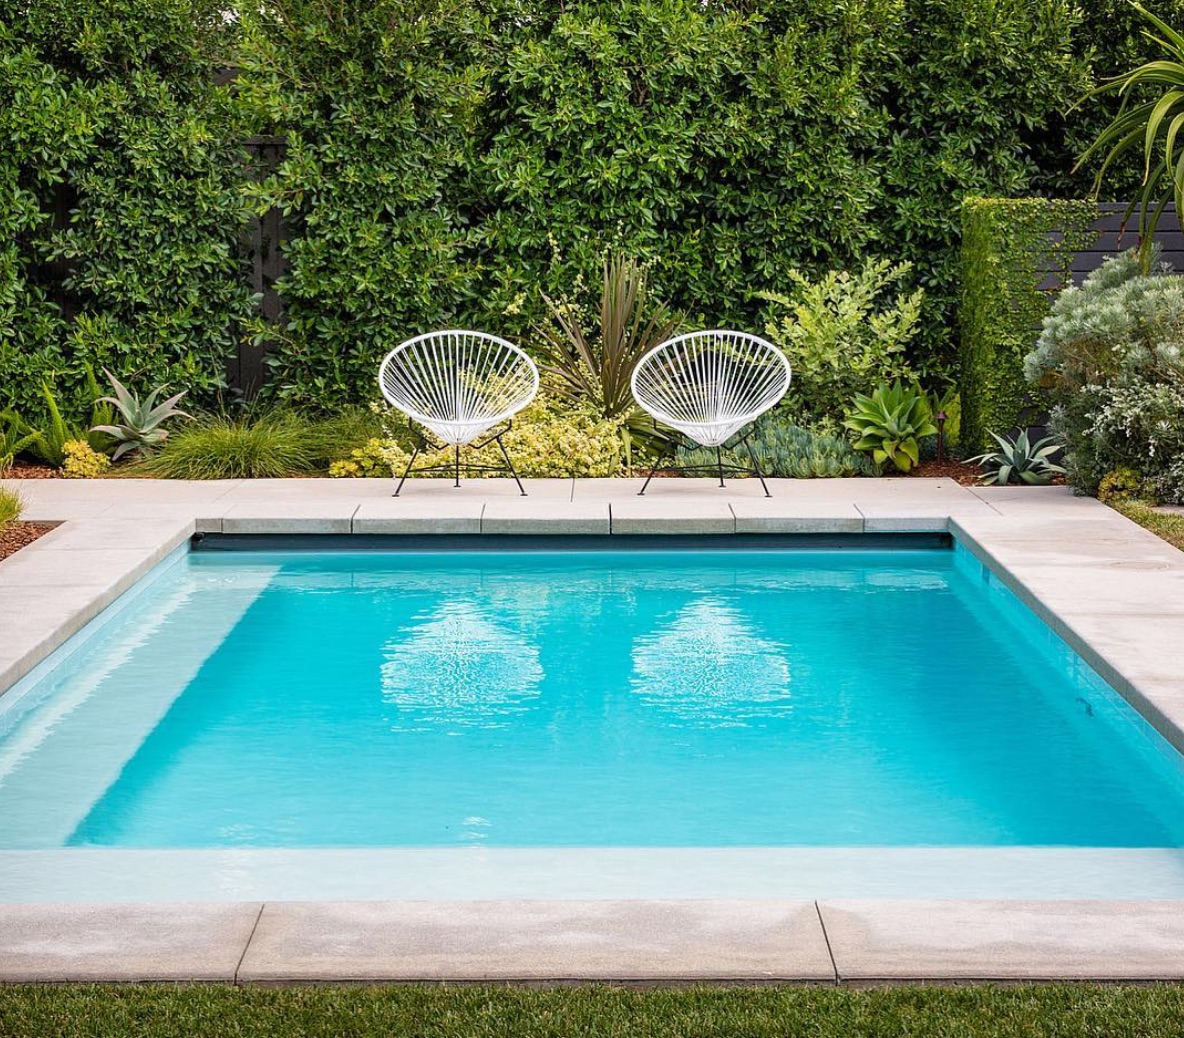 Square small pool with ledge seating